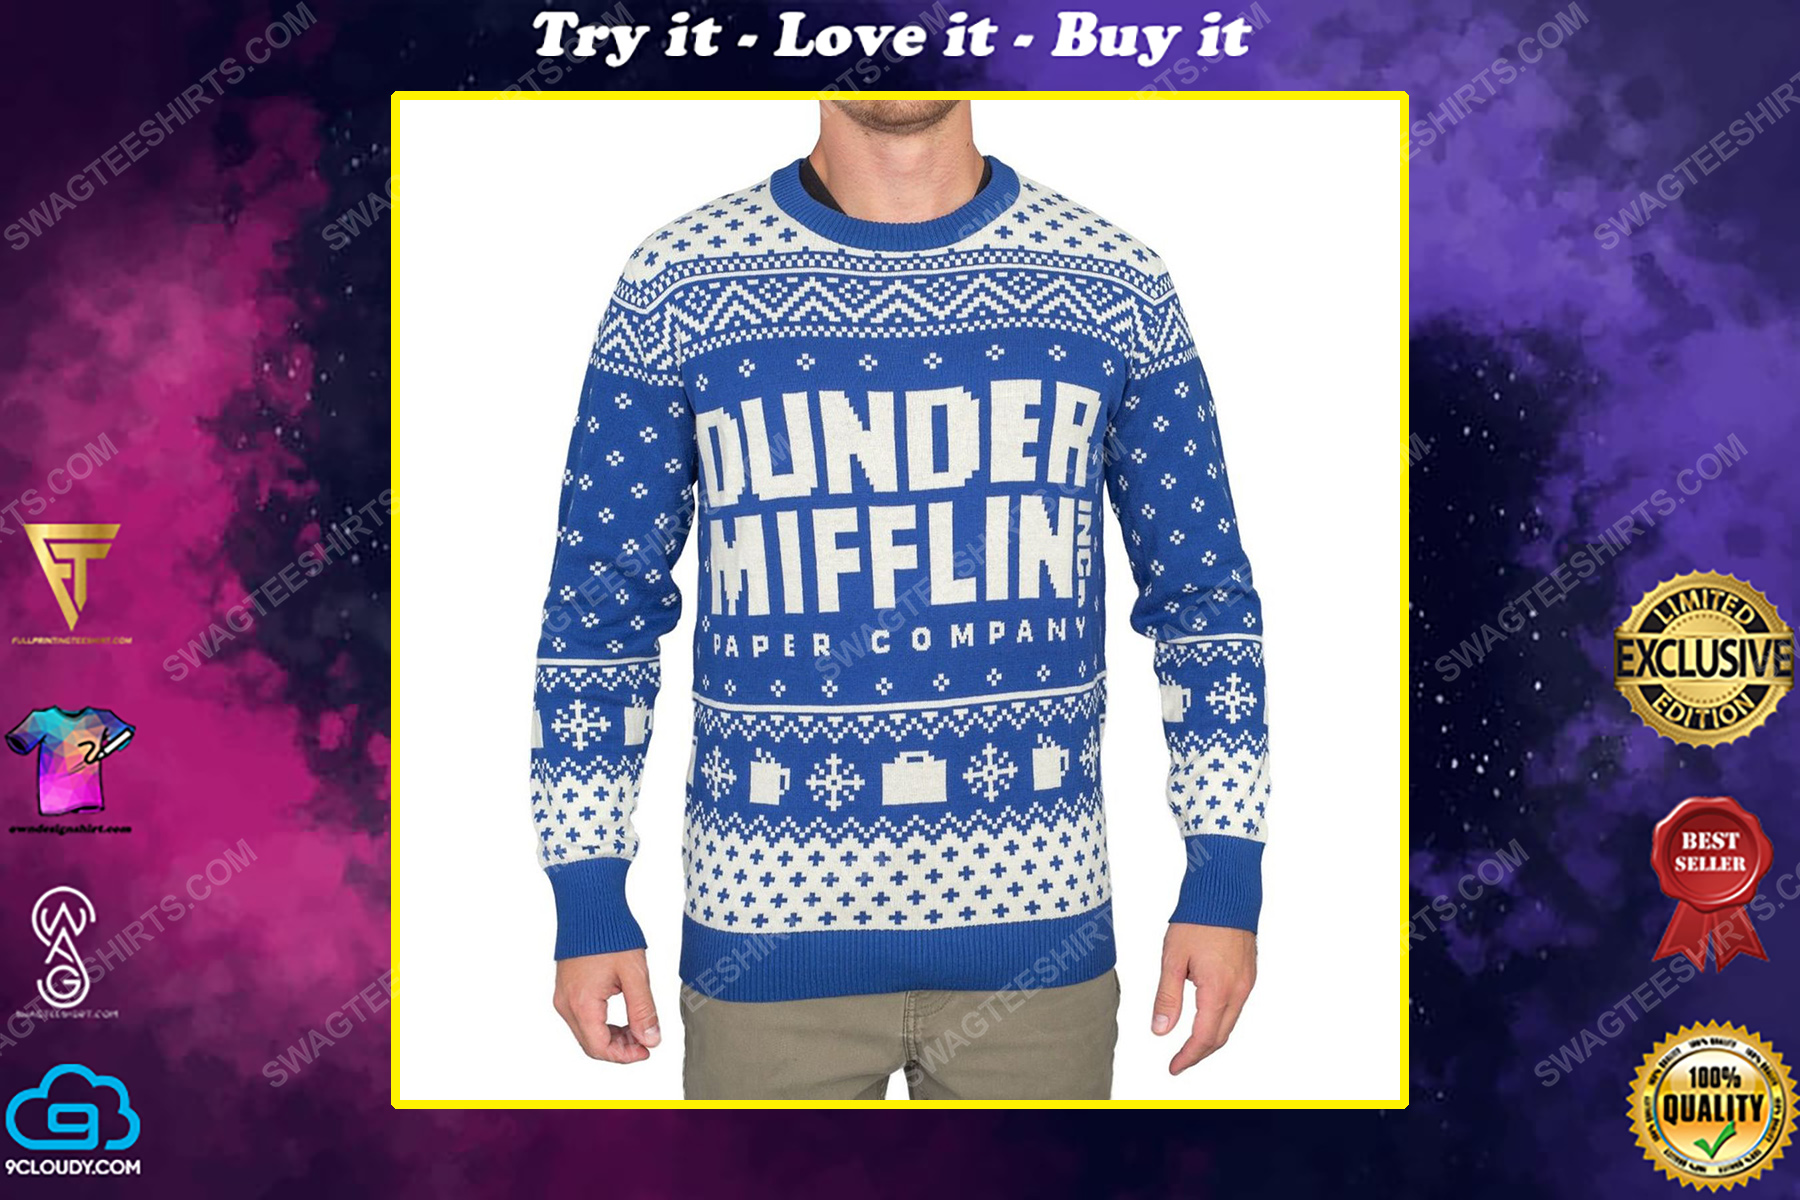 TV show the office dunder mifflin full print ugly christmas sweater